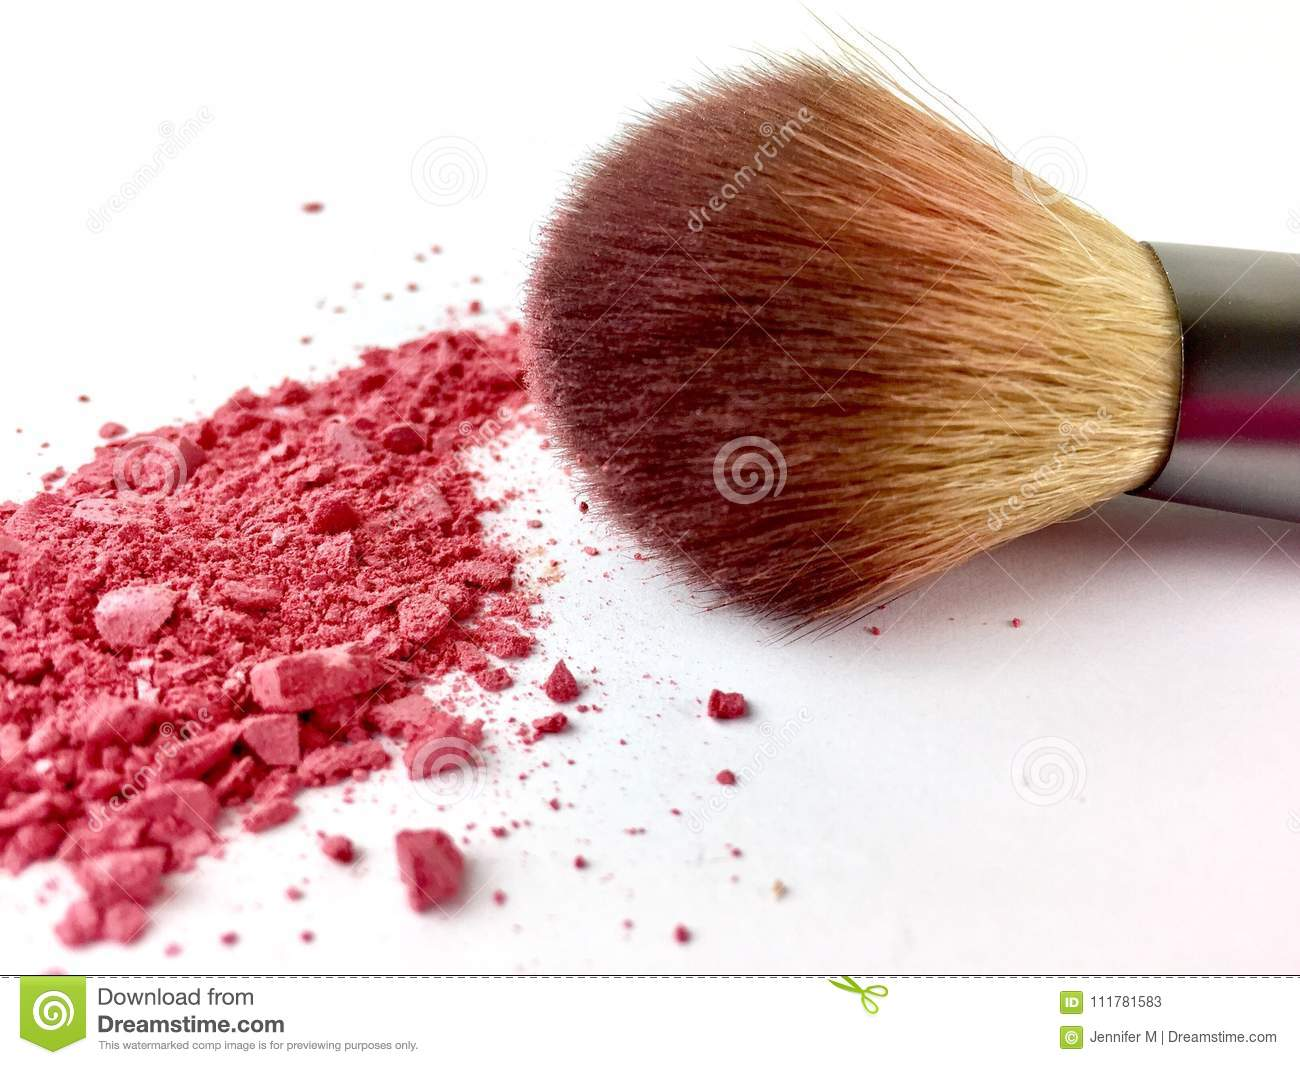 Makeup brush with pink blush powder on a white background